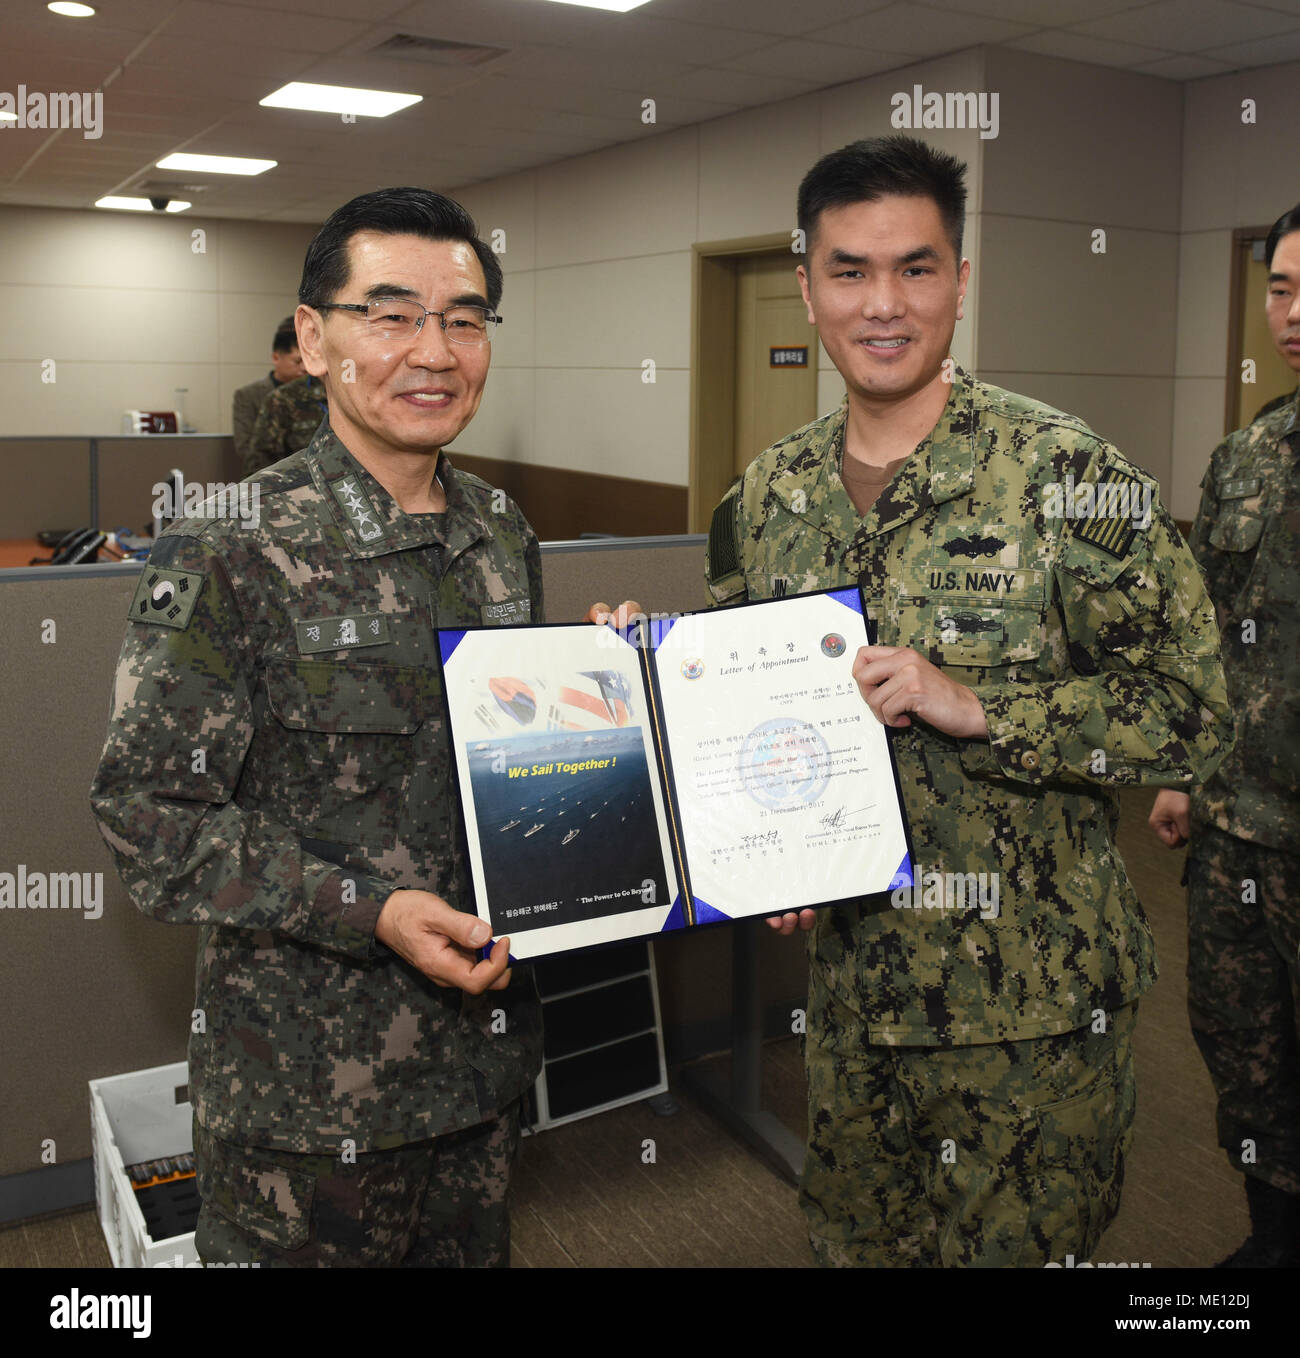 "171221-N-TB148-005 BUSAN, Republic of Korea (Dec. 21, 2017) Republic of Korea (ROK) Navy Vice Adm. Jung, Jin-Sup, commander, ROK Fleet, presents Lt.  Sean Jin with a letter of appointment for his selection to the ""Great Young Minds"" Junior Officers' Engagement and Cooperation Program. The ""Great Young Minds"" initiative brings together hand-selected, young officers from the ROK and U.S. navies and challenges them to develop innovative solutions to further enhance the ROK -U.S. alliance of the future. (U.S. Navy photo by Mass Communication Specialist Seaman William Carlisle) Stock Photo"